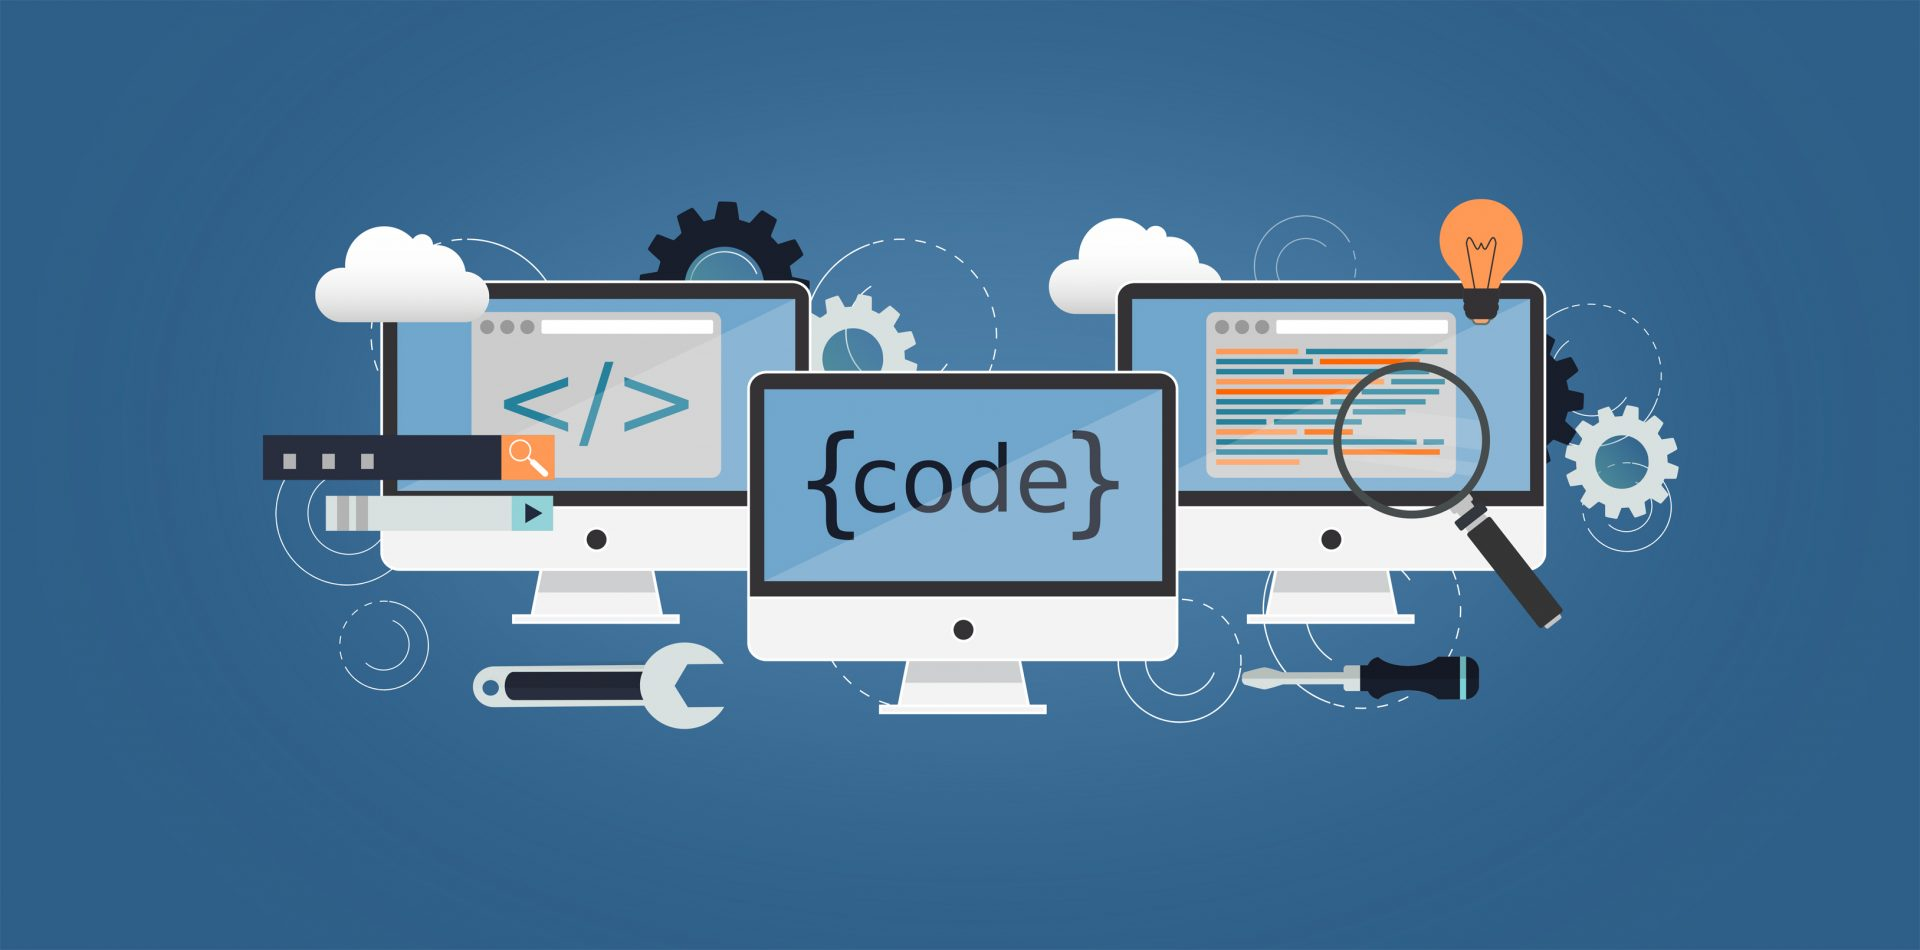 stockvault-coding-and-programming-computer-science-and-it239575-1.jpg